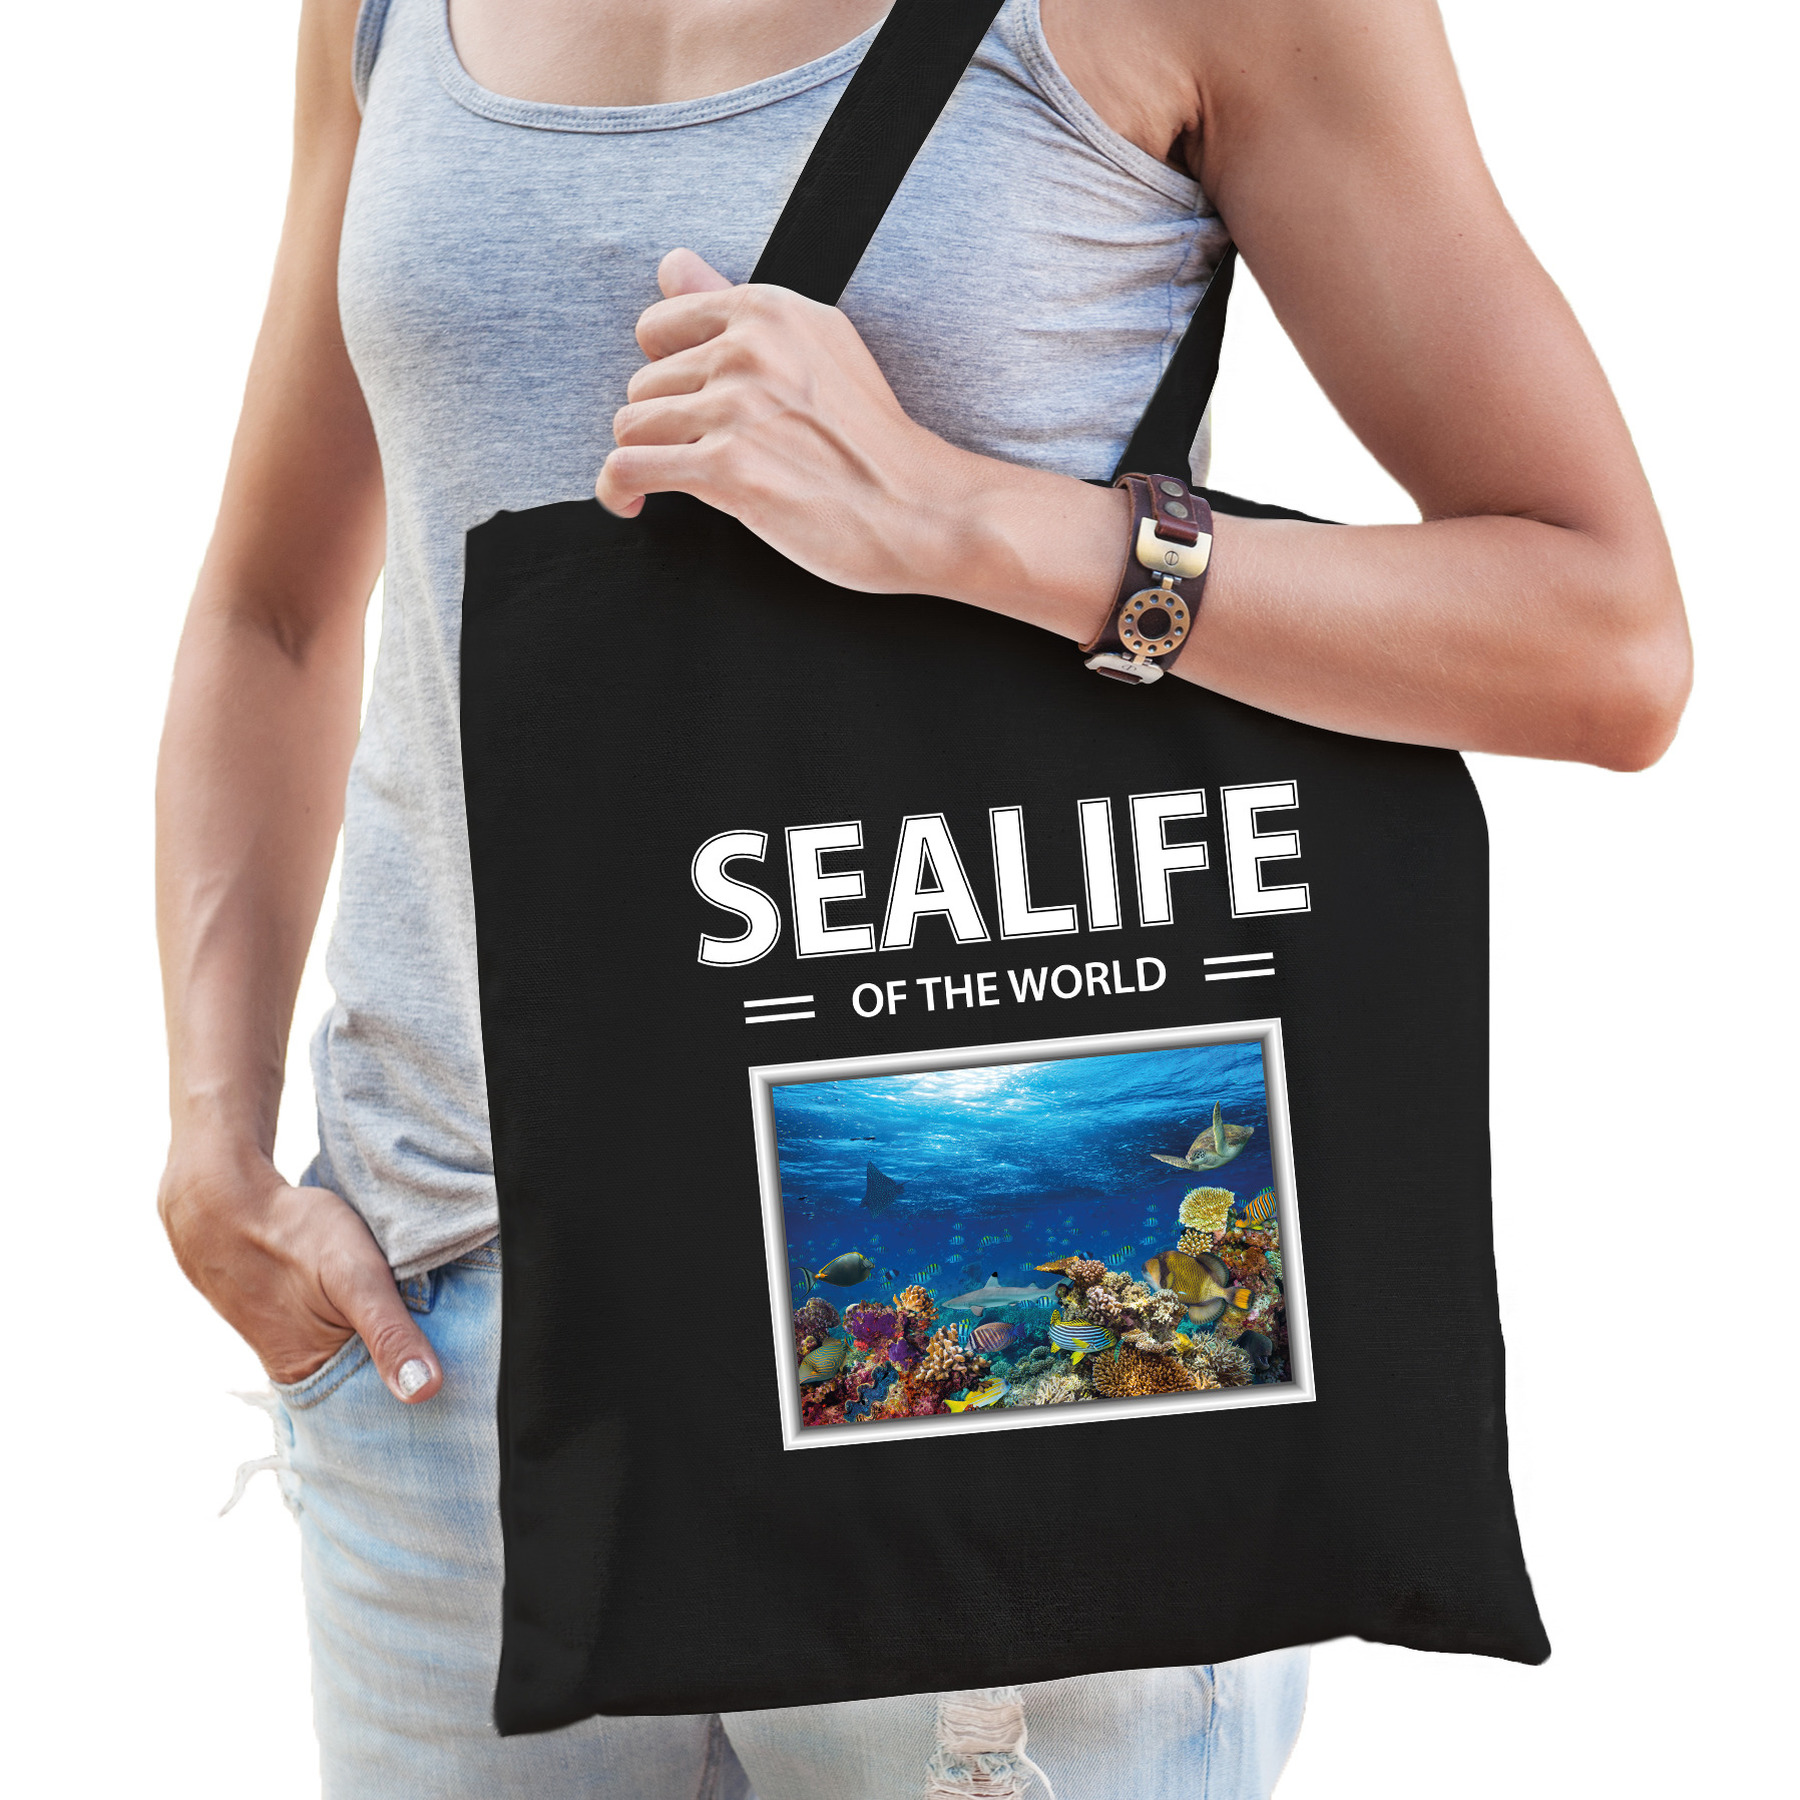 Katoenen tasje Vis zwart - sealife of the world Vissen cadeau tas